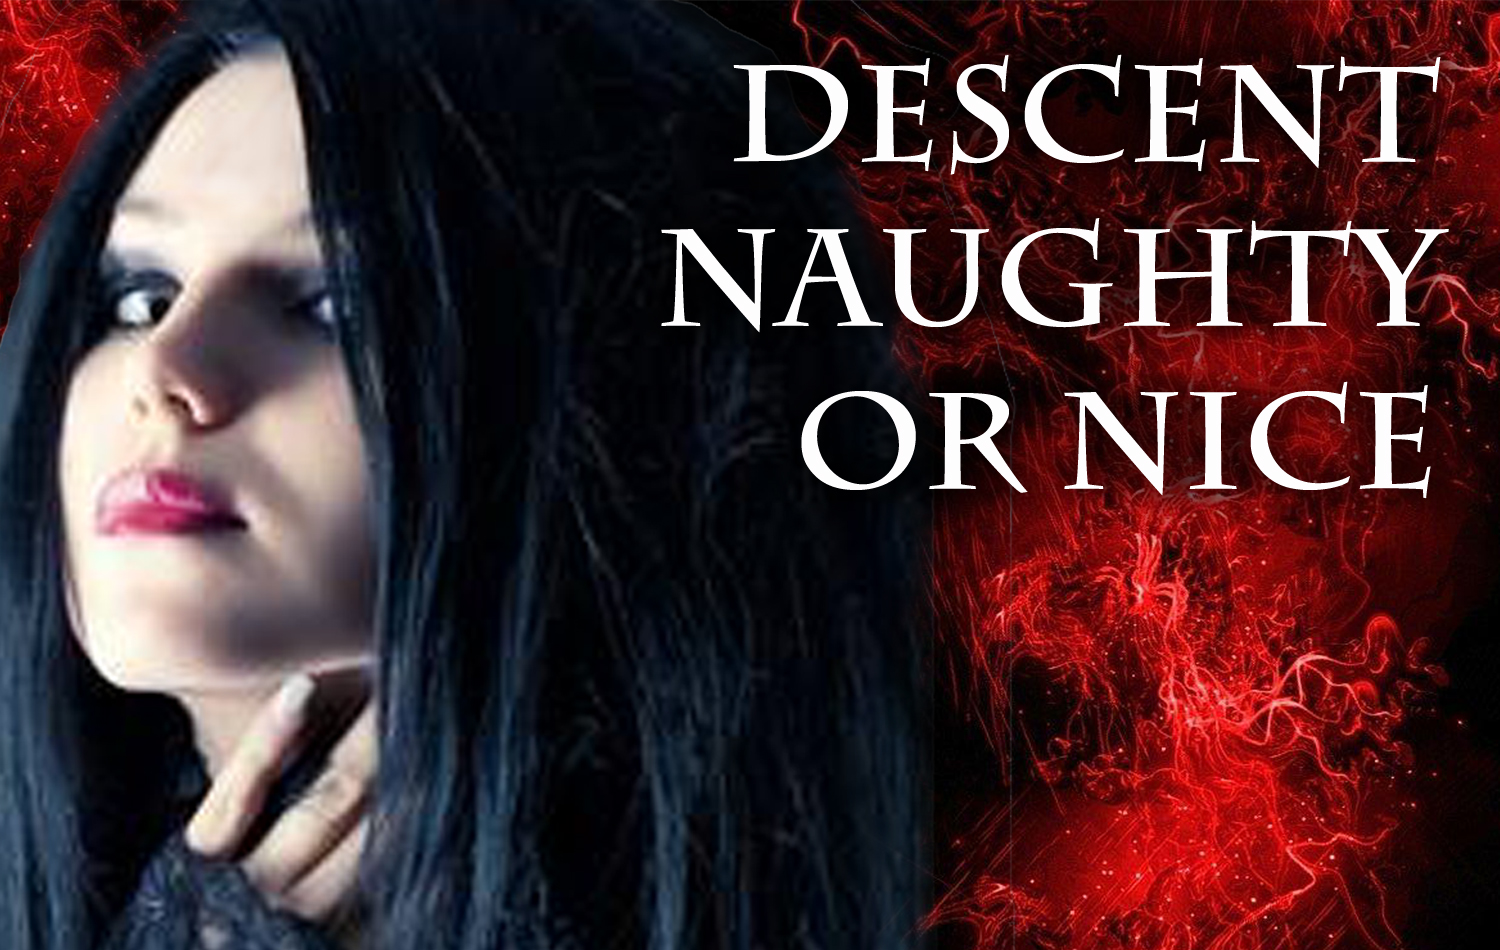 Descent Gothic Naughty or Nice December 23, 2018 @ Red Room Vancouver